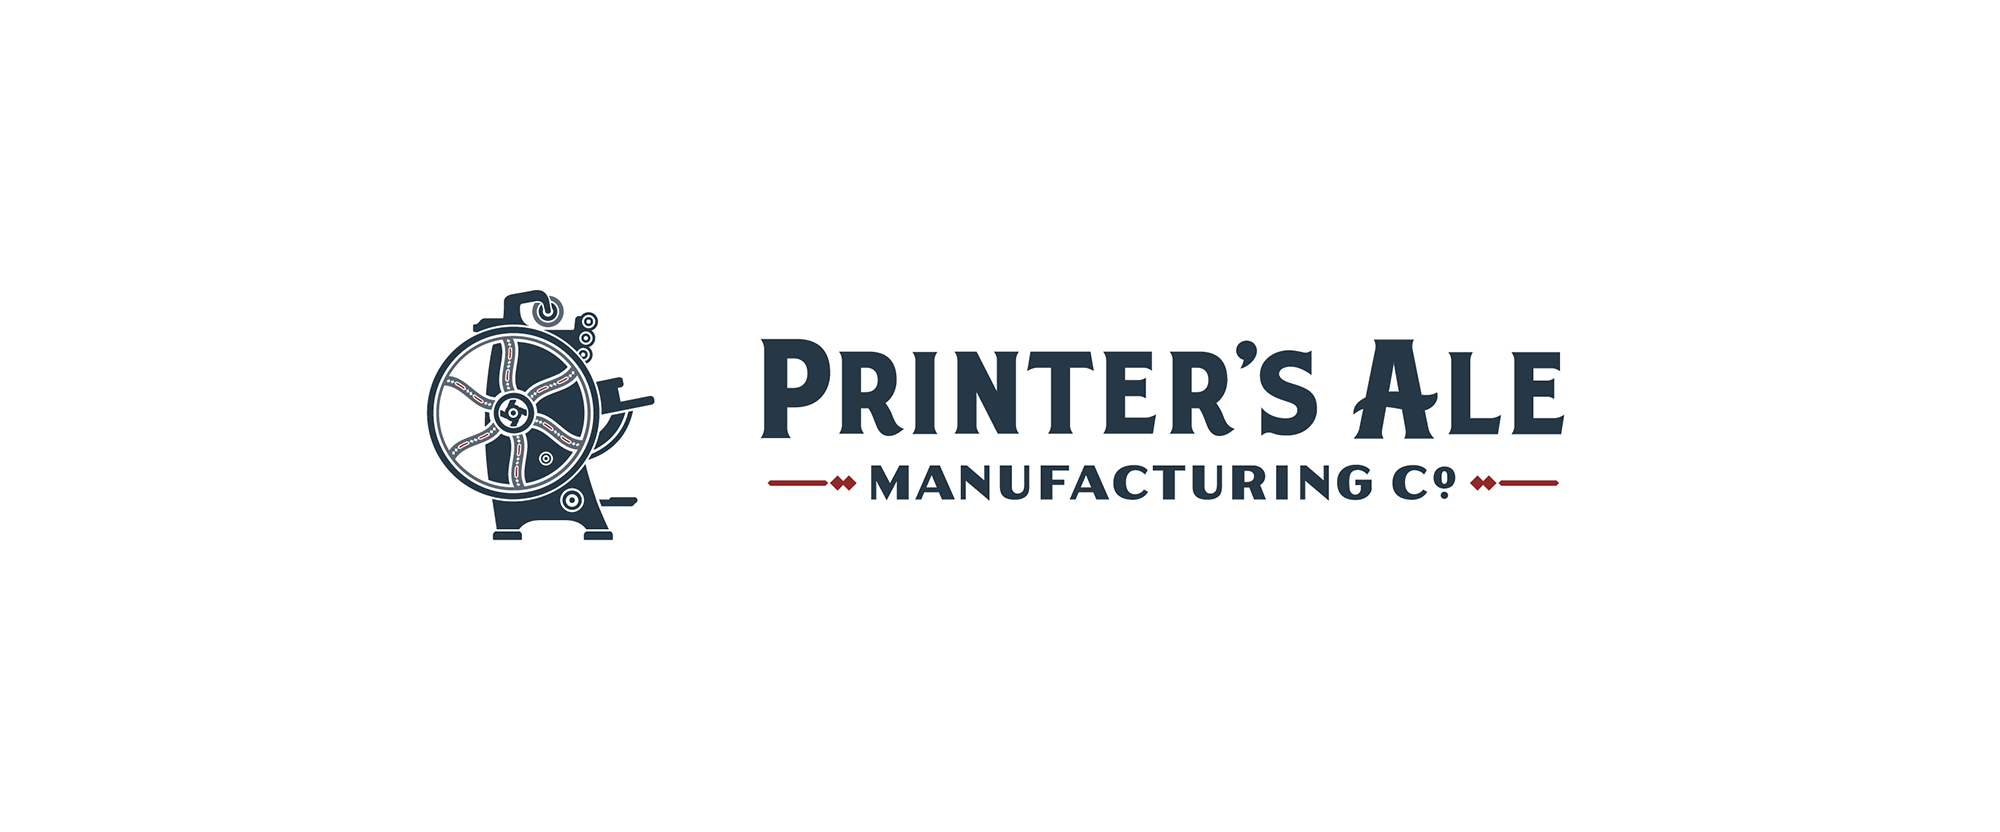 New Logo and Packaging for Printer's Ale Manufacturing Co. by CODO